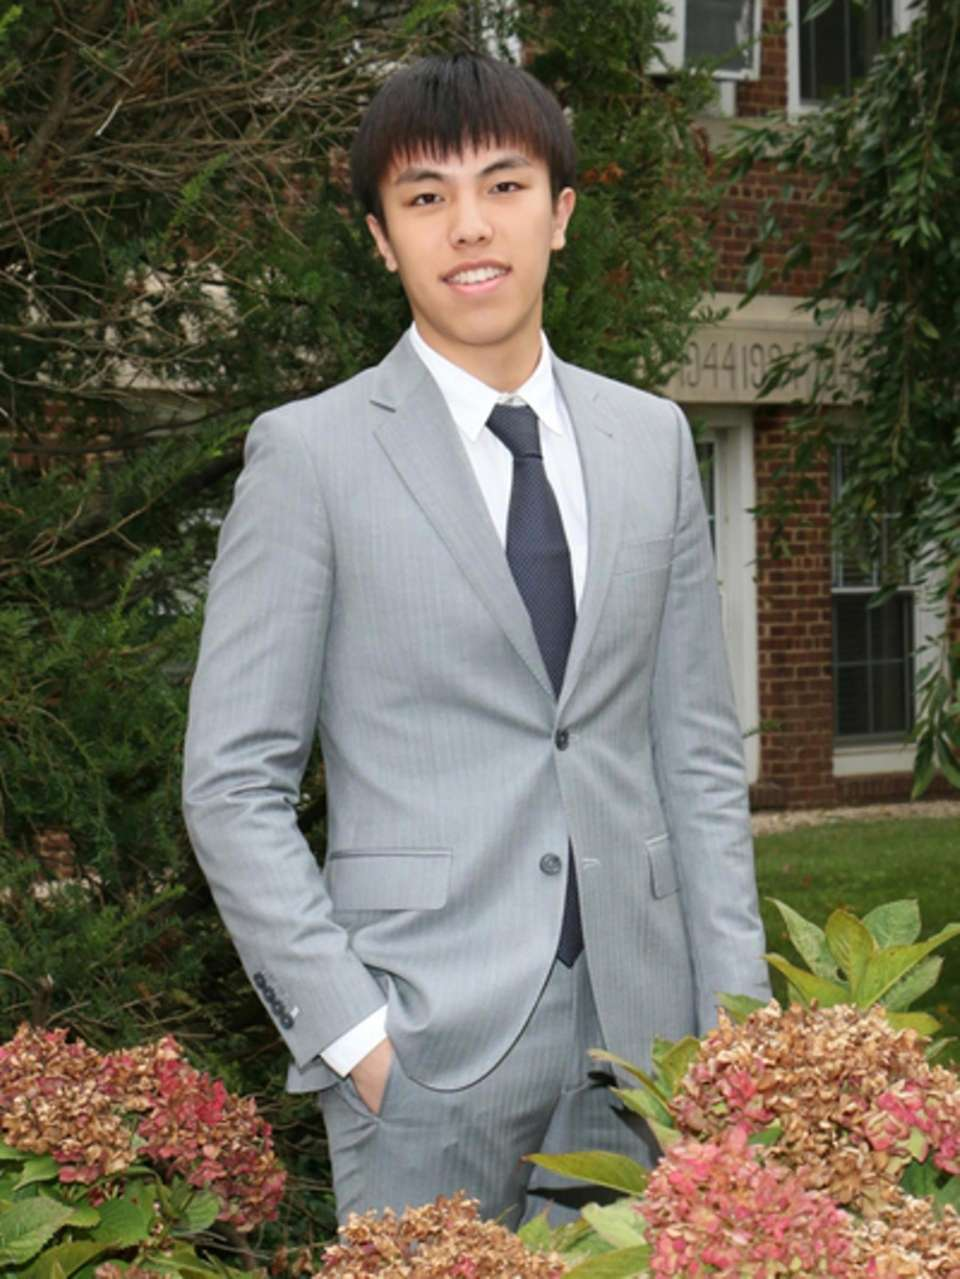 LAWRENCE WOODMERE ACADEMY, HAORAN (VINCENT) WEN Hometown: Shandong,